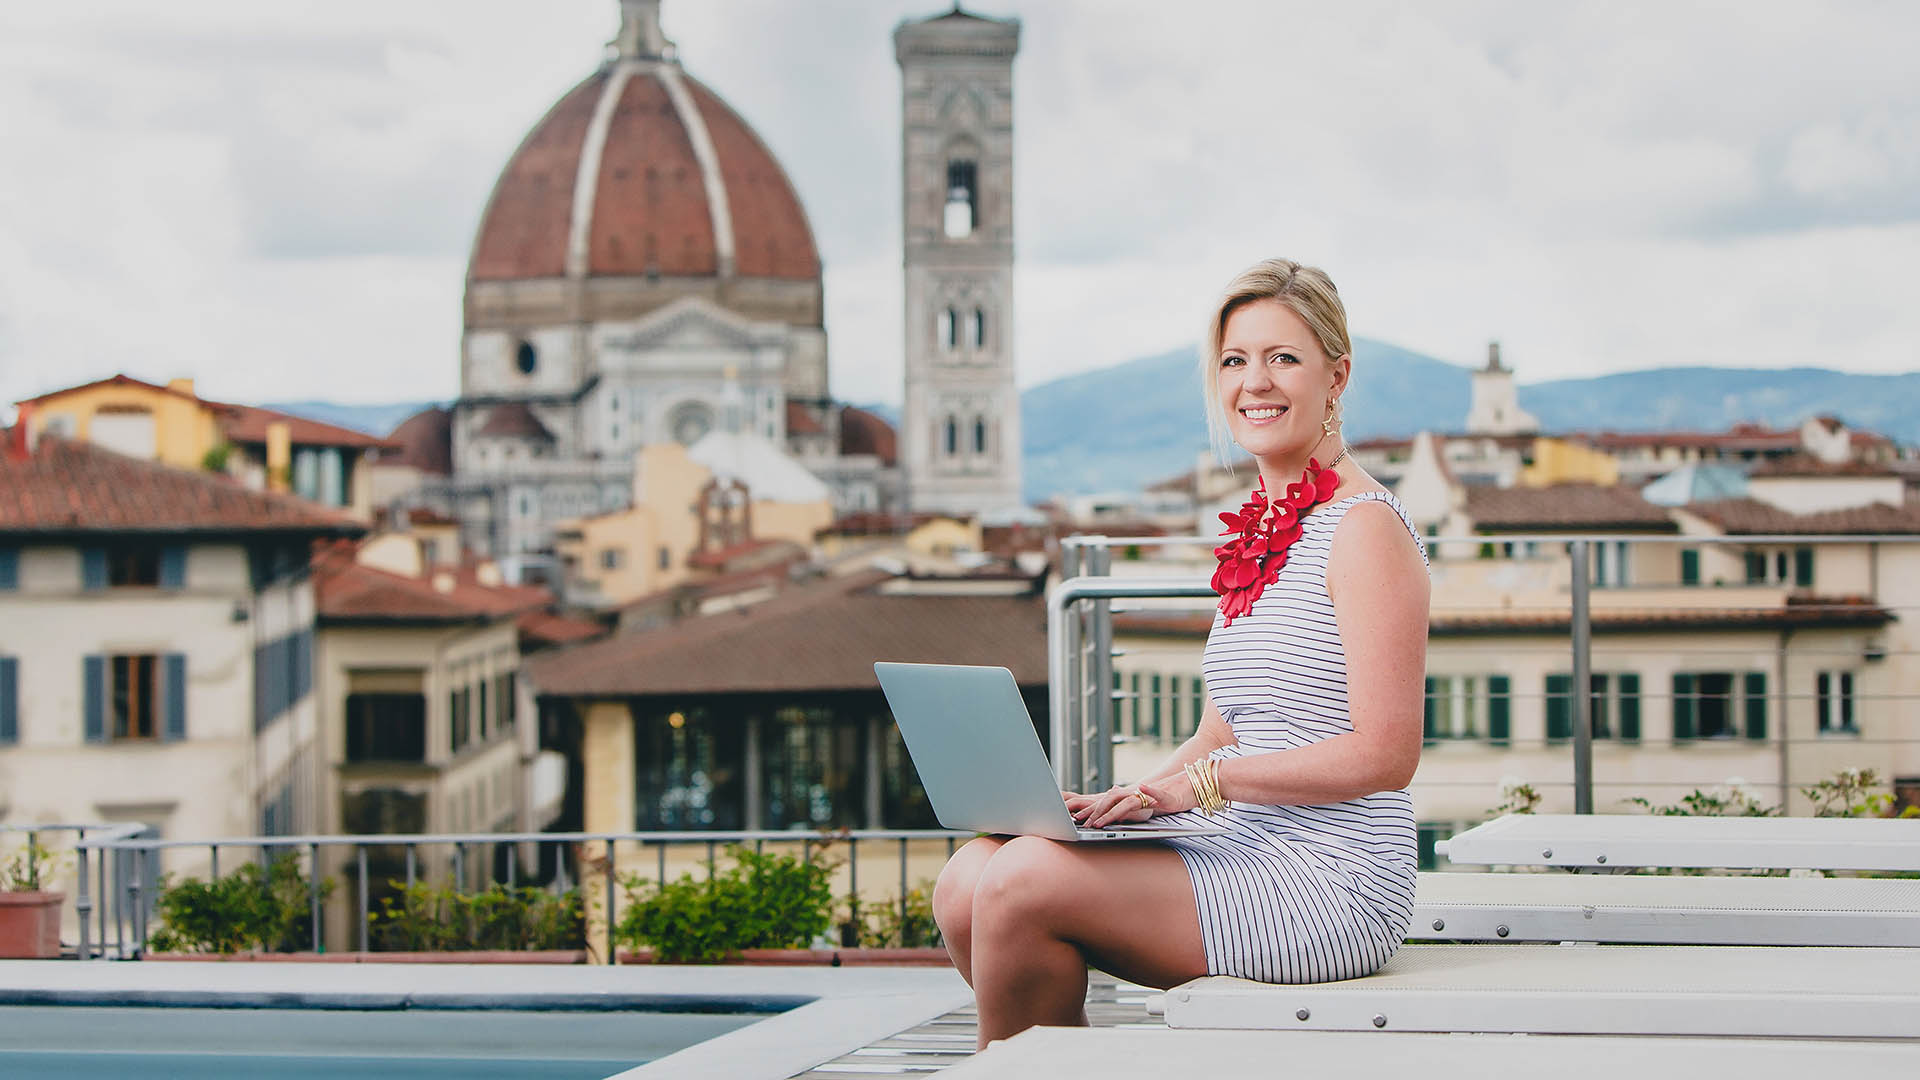 Personal Branding Photographer in Florence and Tuscany